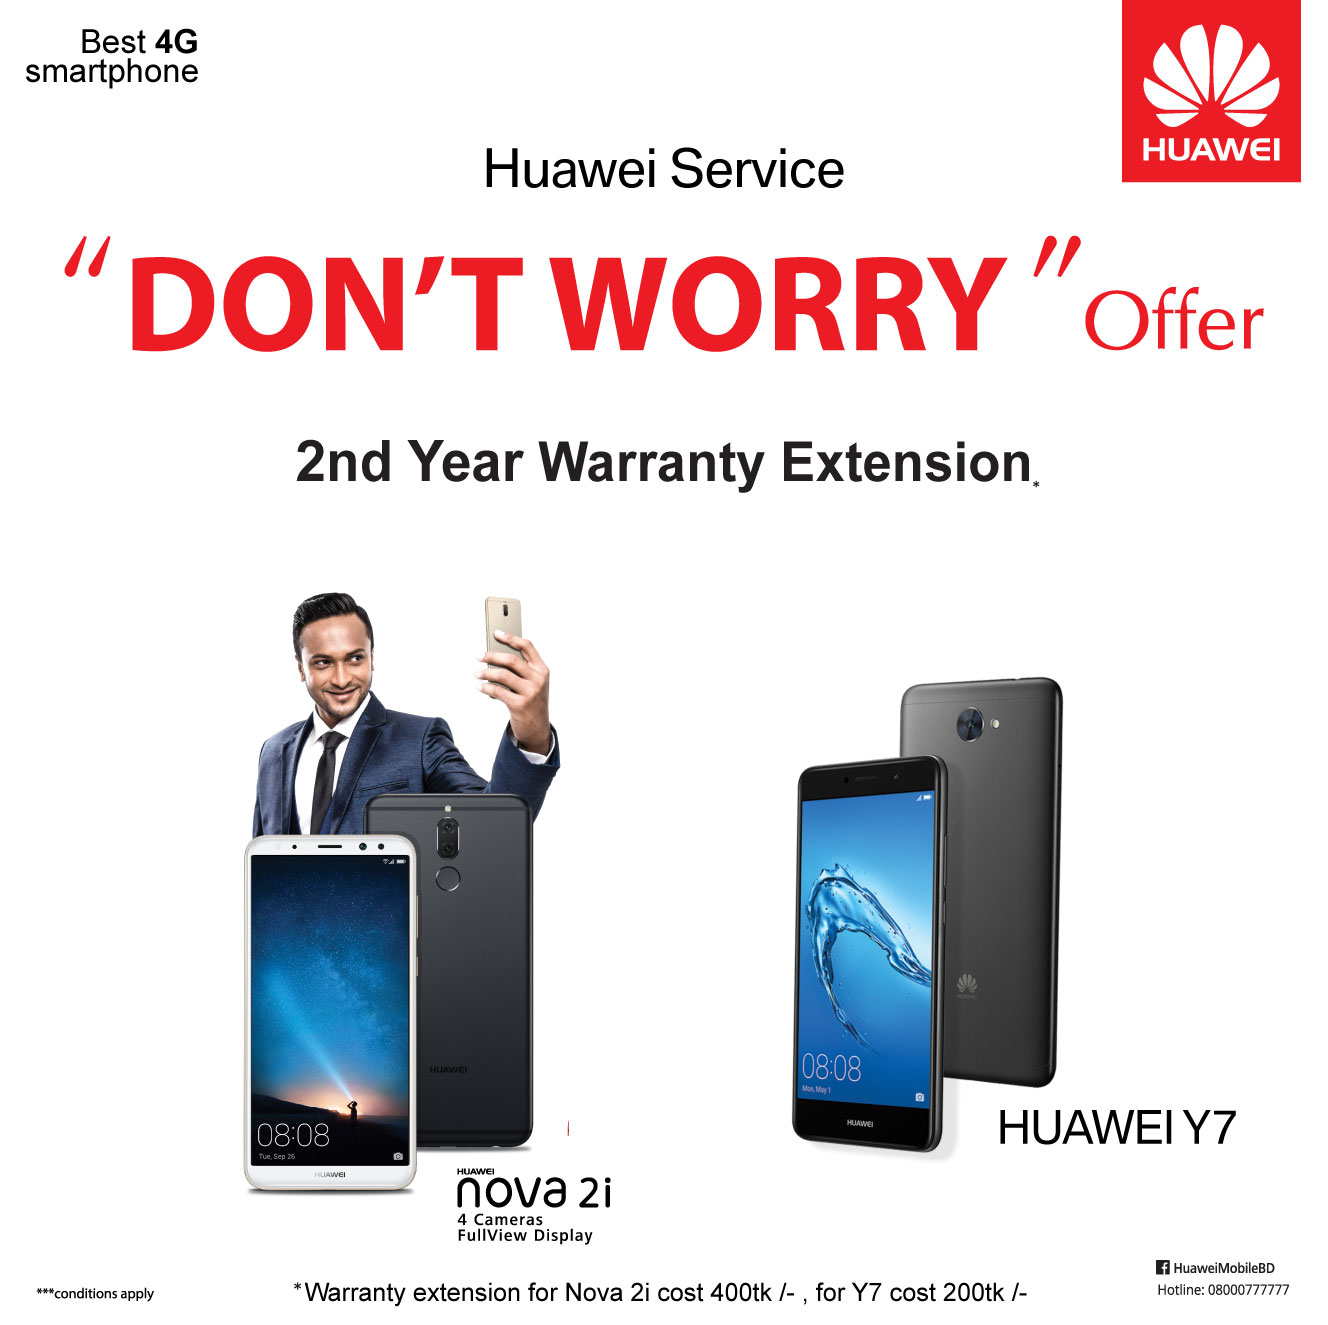 Warranty Extension offer